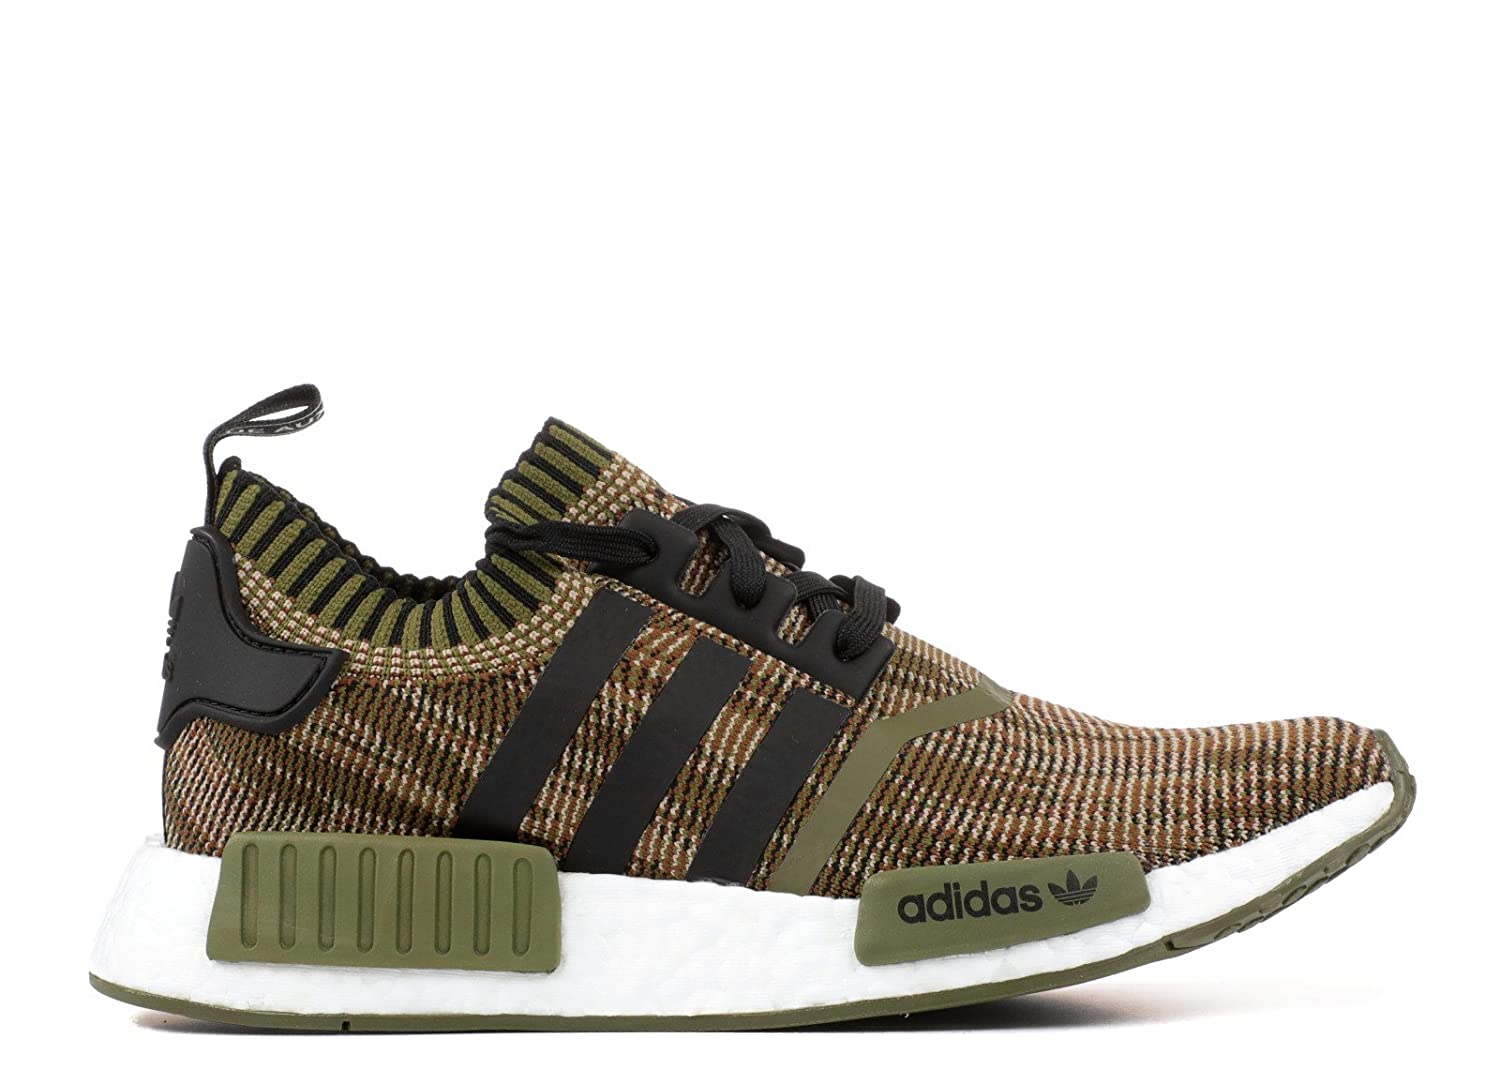 the latest f7752 96be3 Amazon.com | adidas NMD R1 - Cq1864 - Size 10.5 Black, Olive ...